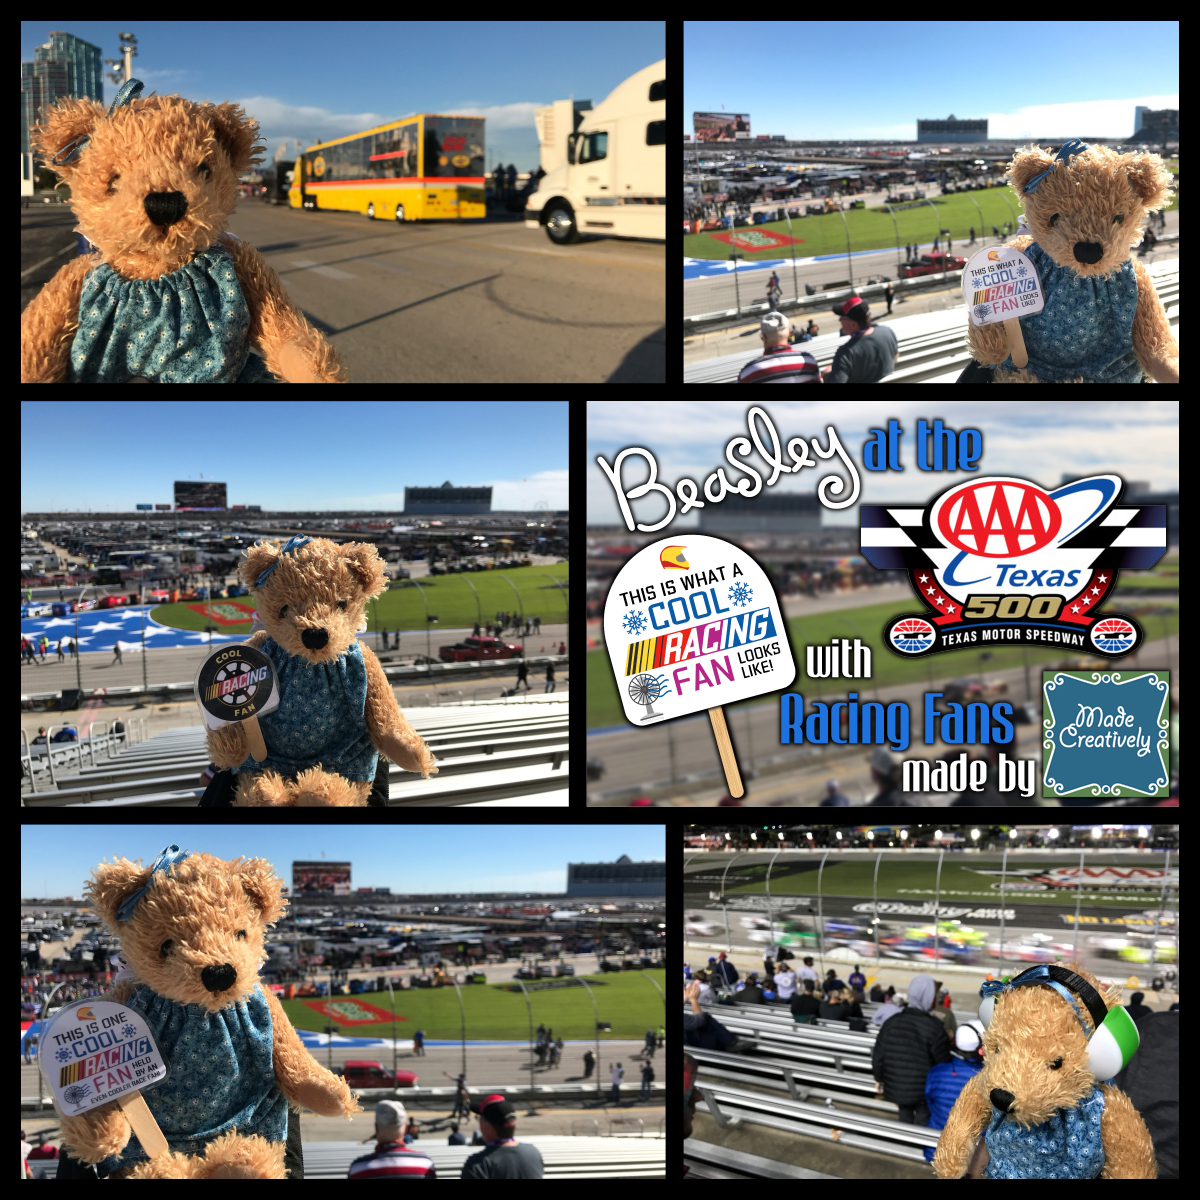 Beasley at the AAA Texas 500 Race with Racing Fans made by ItsMadeCreatively!